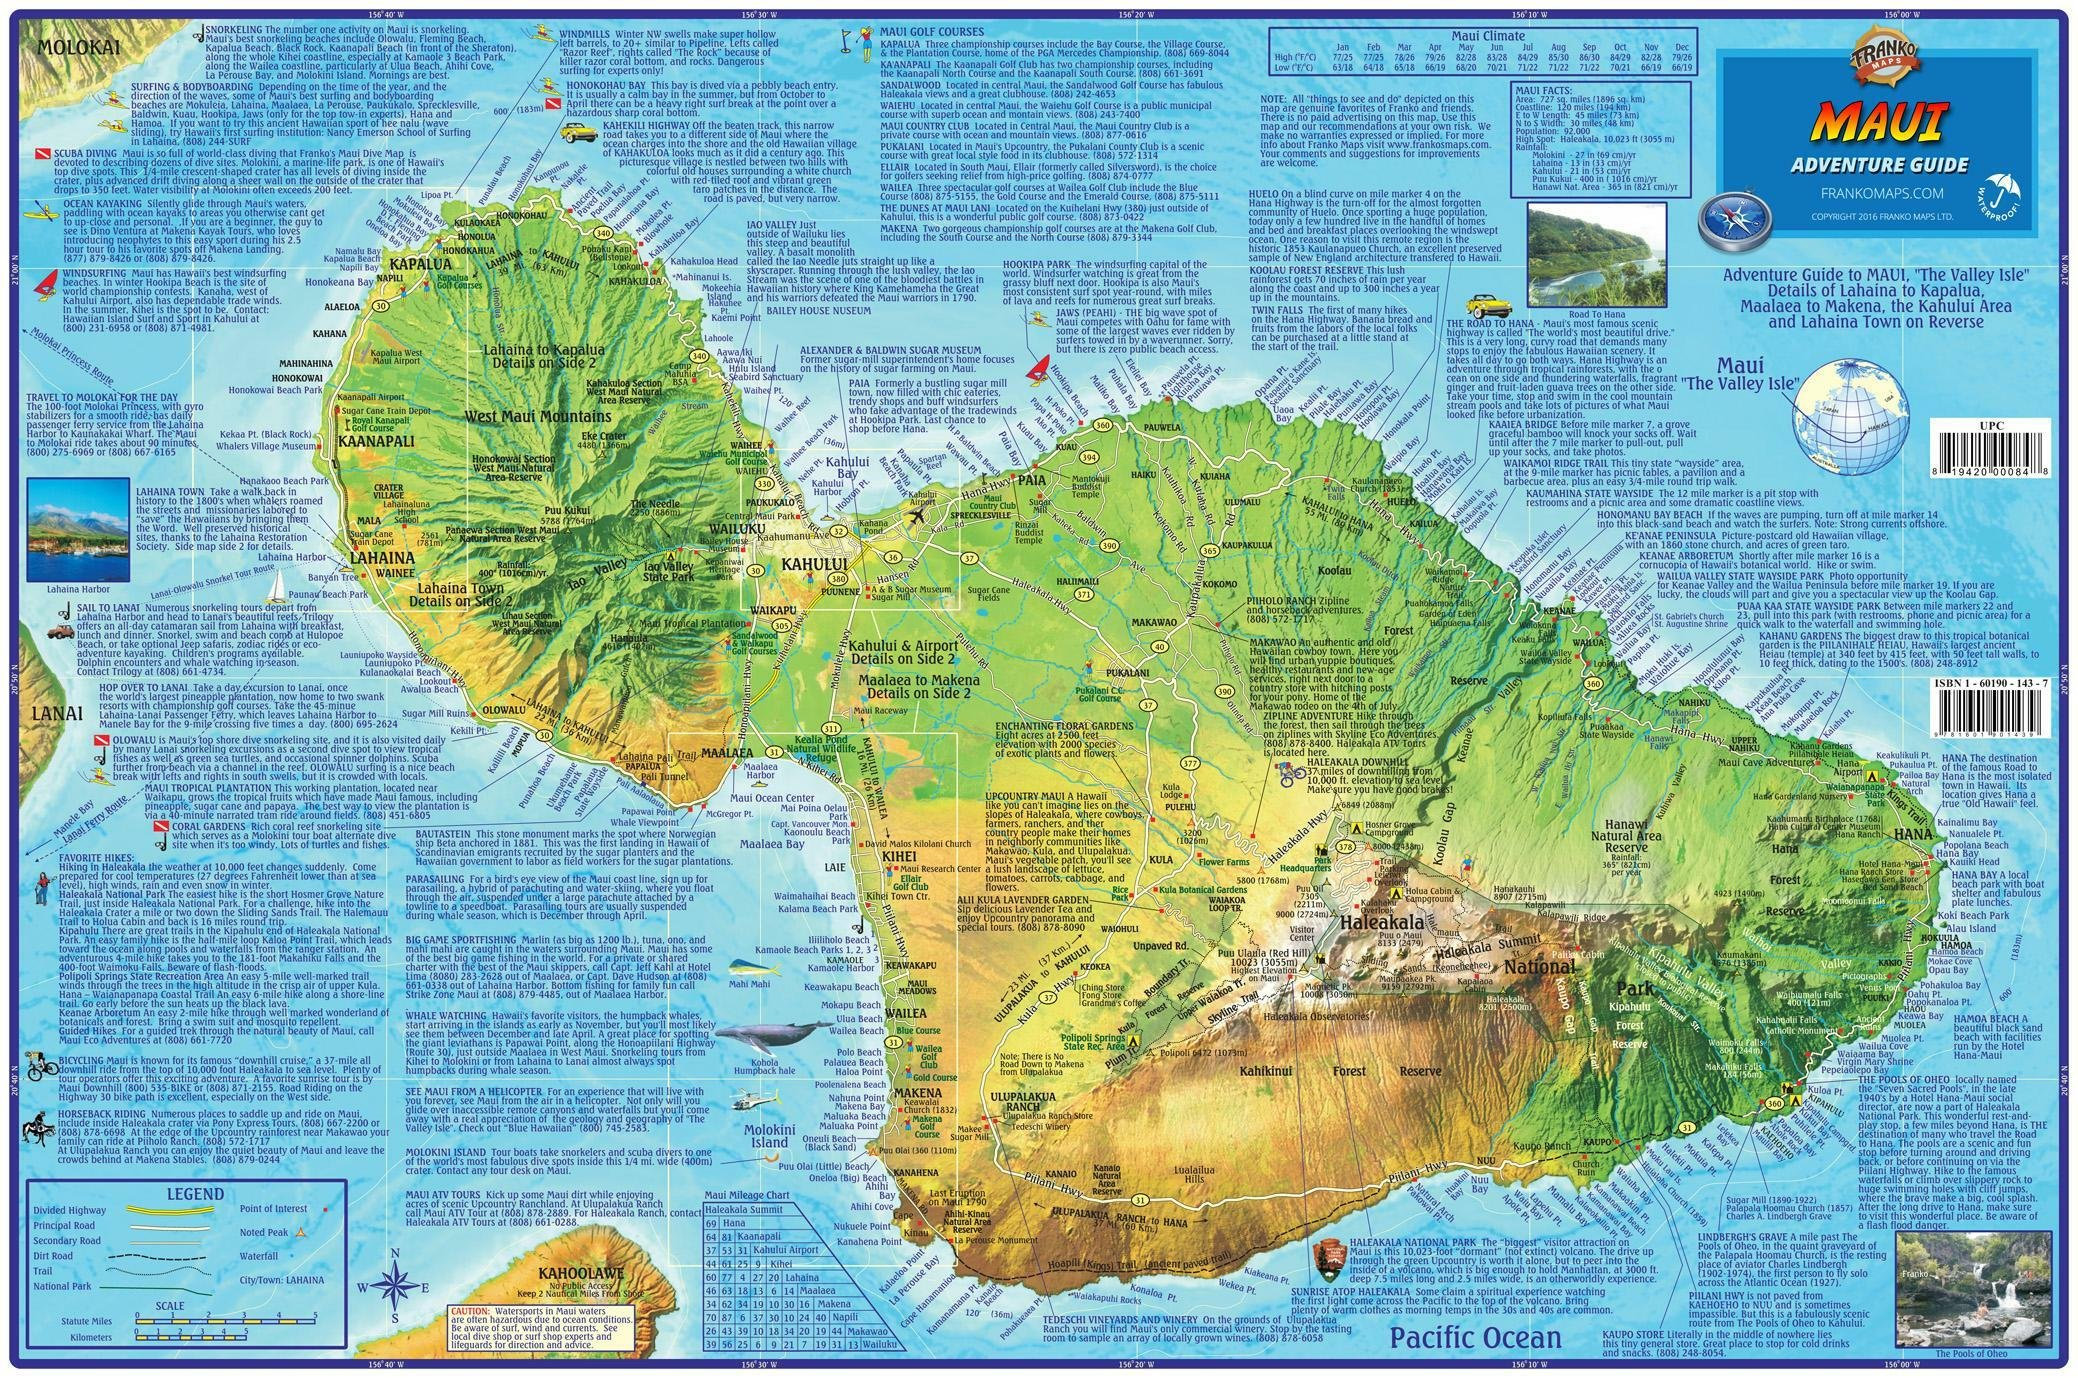 Maui Hawaii Adventure Guide Franko Maps Waterproof Map: Franko Maps on